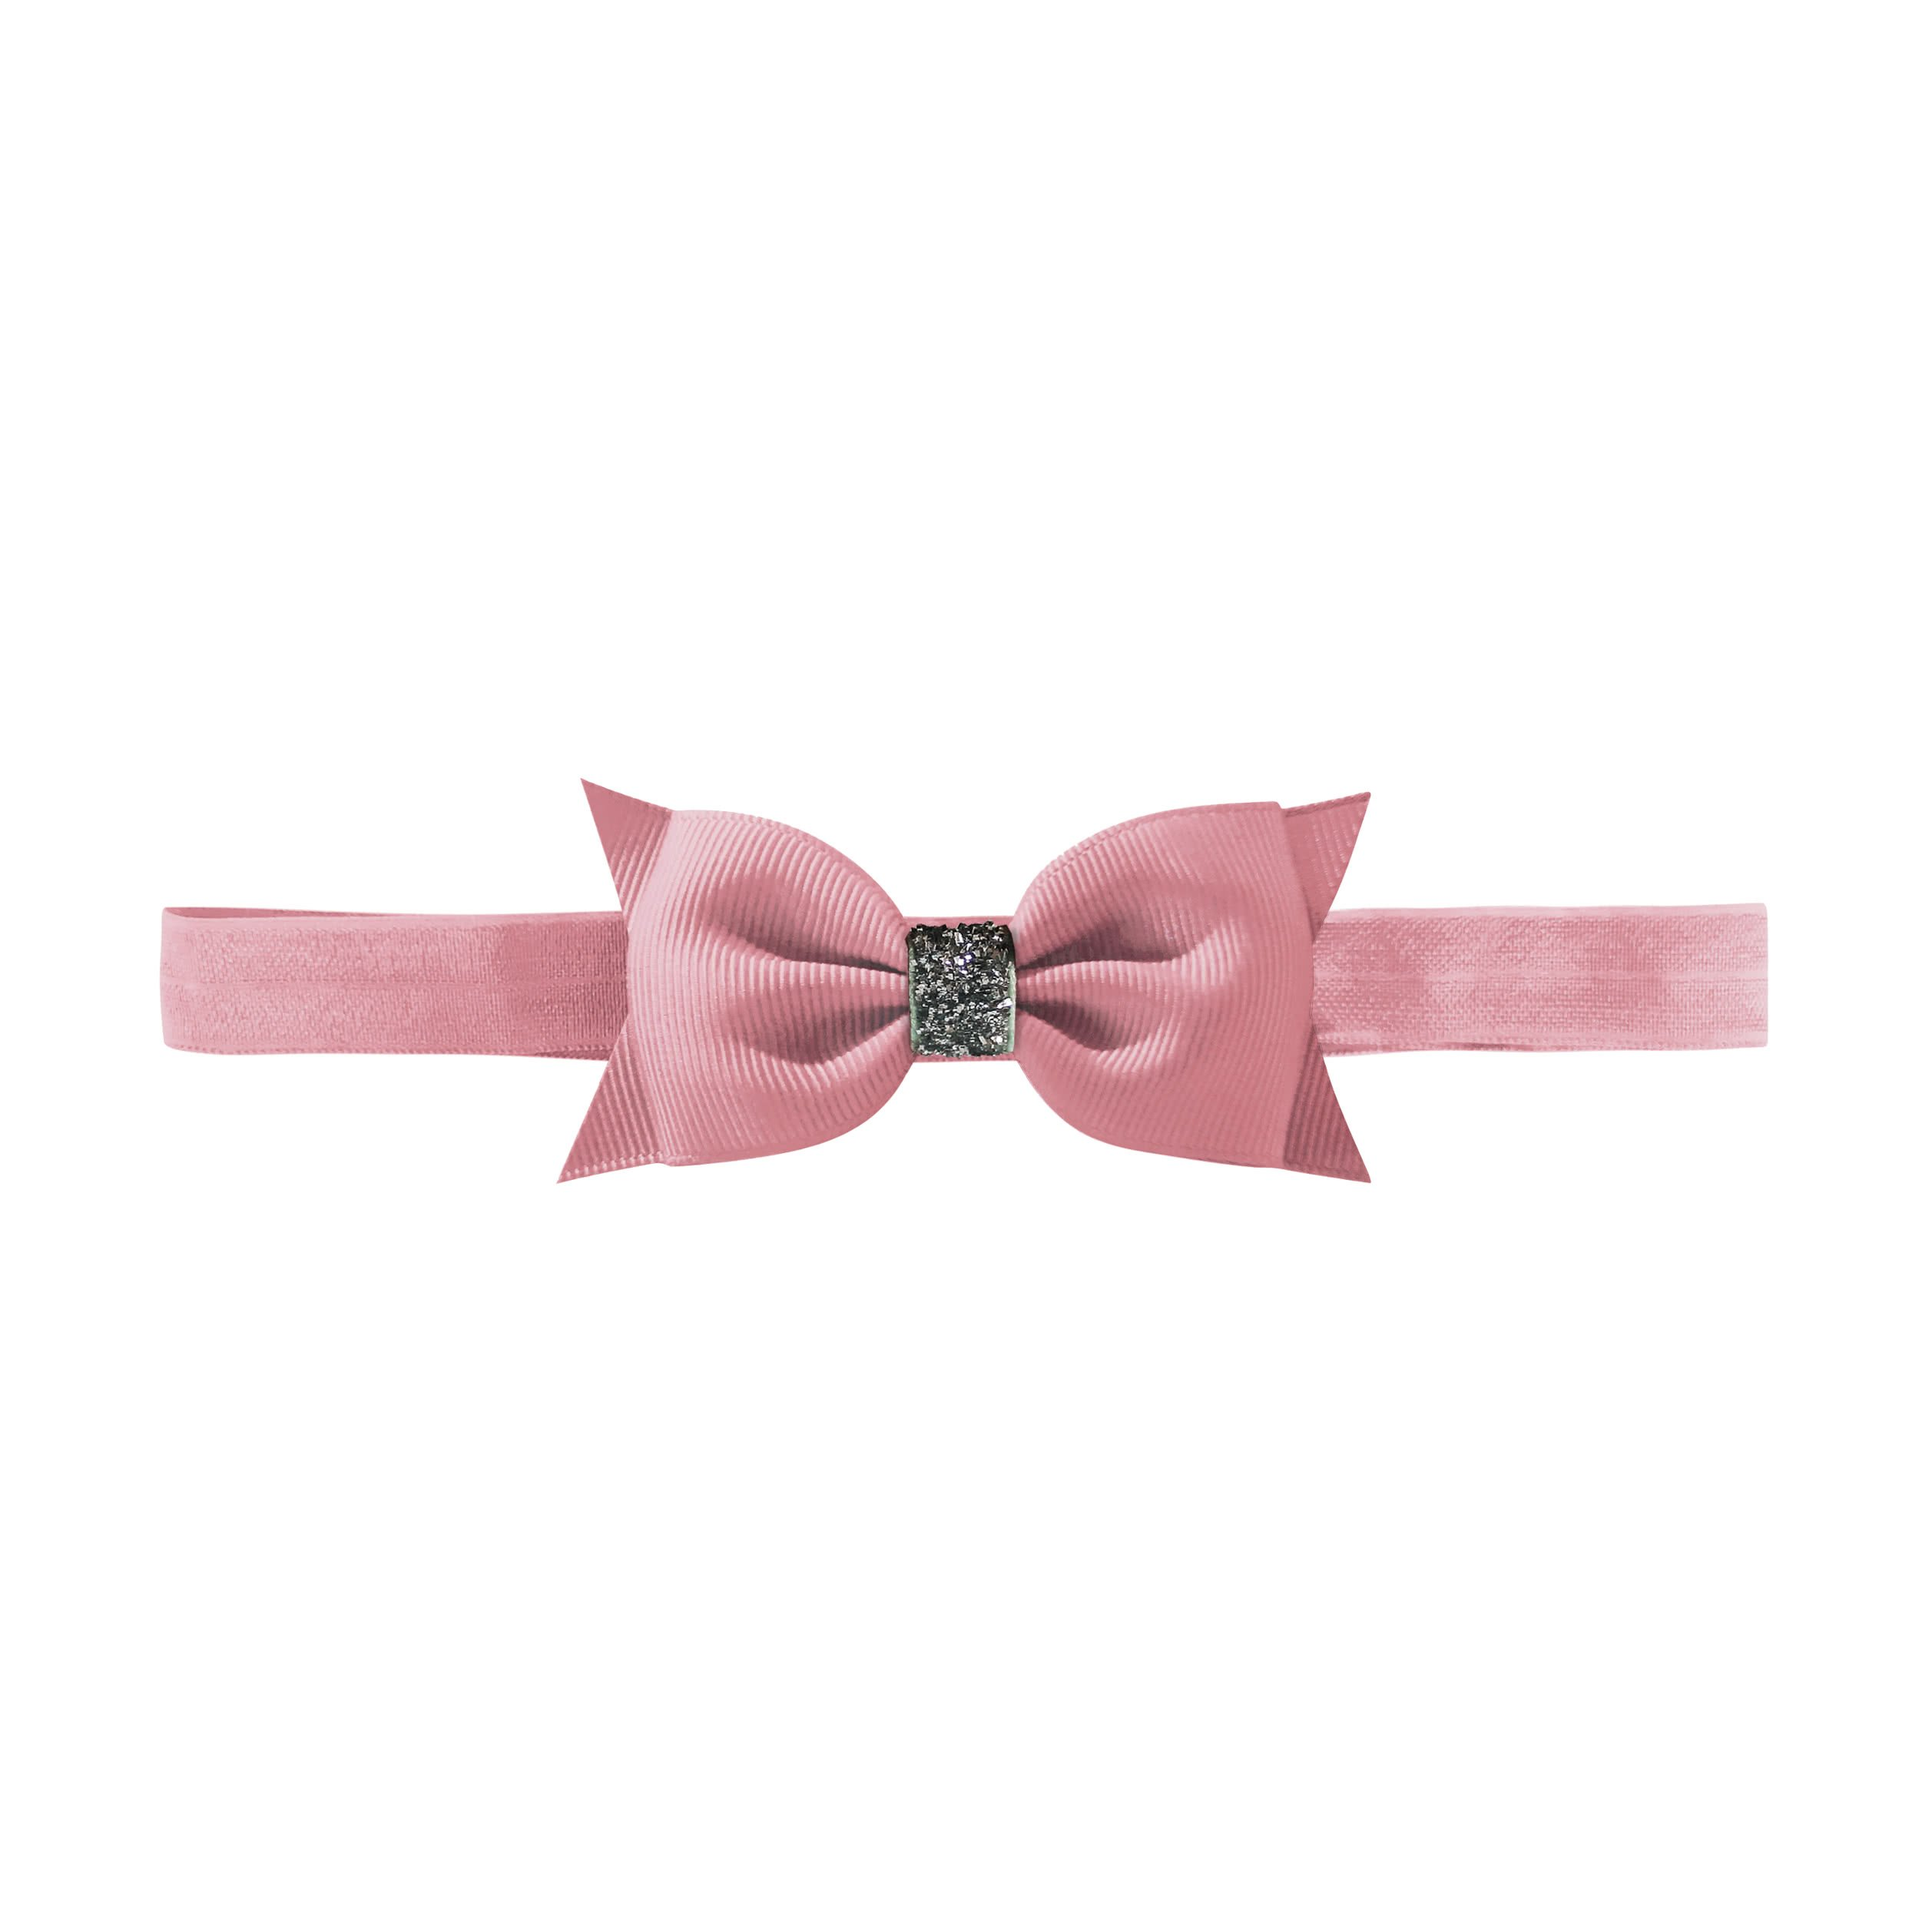 Image of   Double Bowtie bow - elastic hairband - quartz glitter